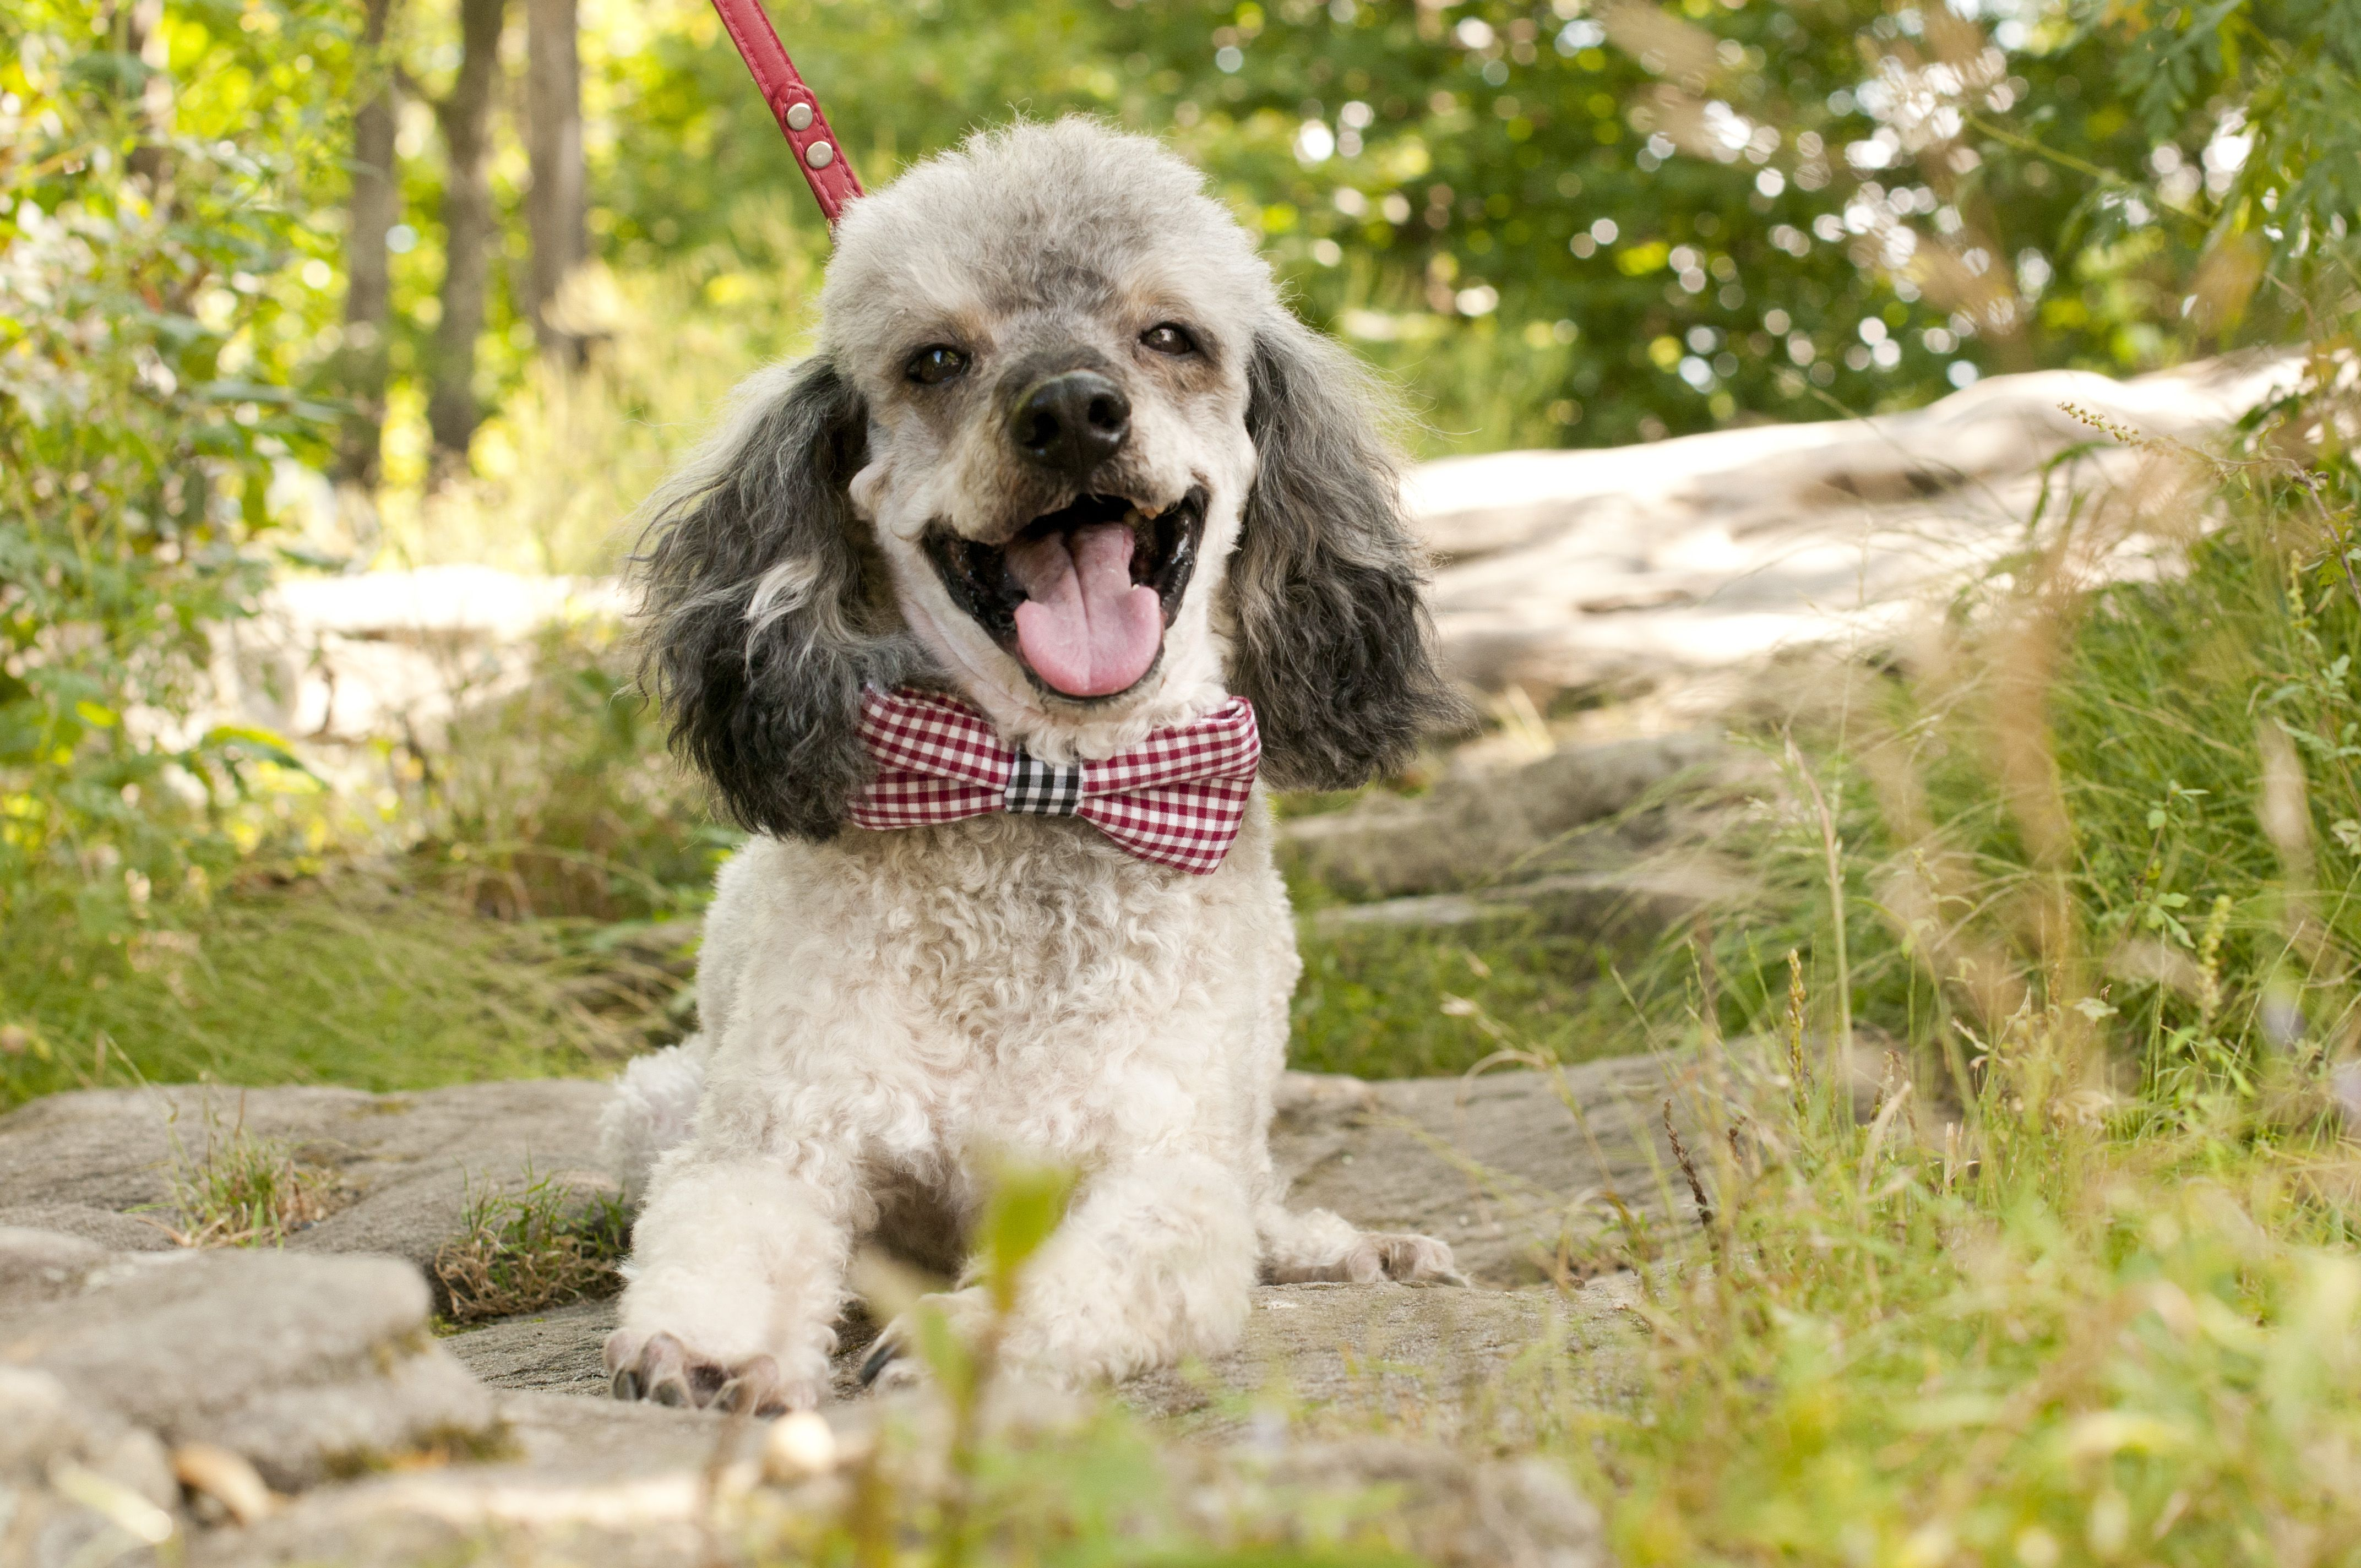 Nothing better than a happy pup and an adorable bowtie